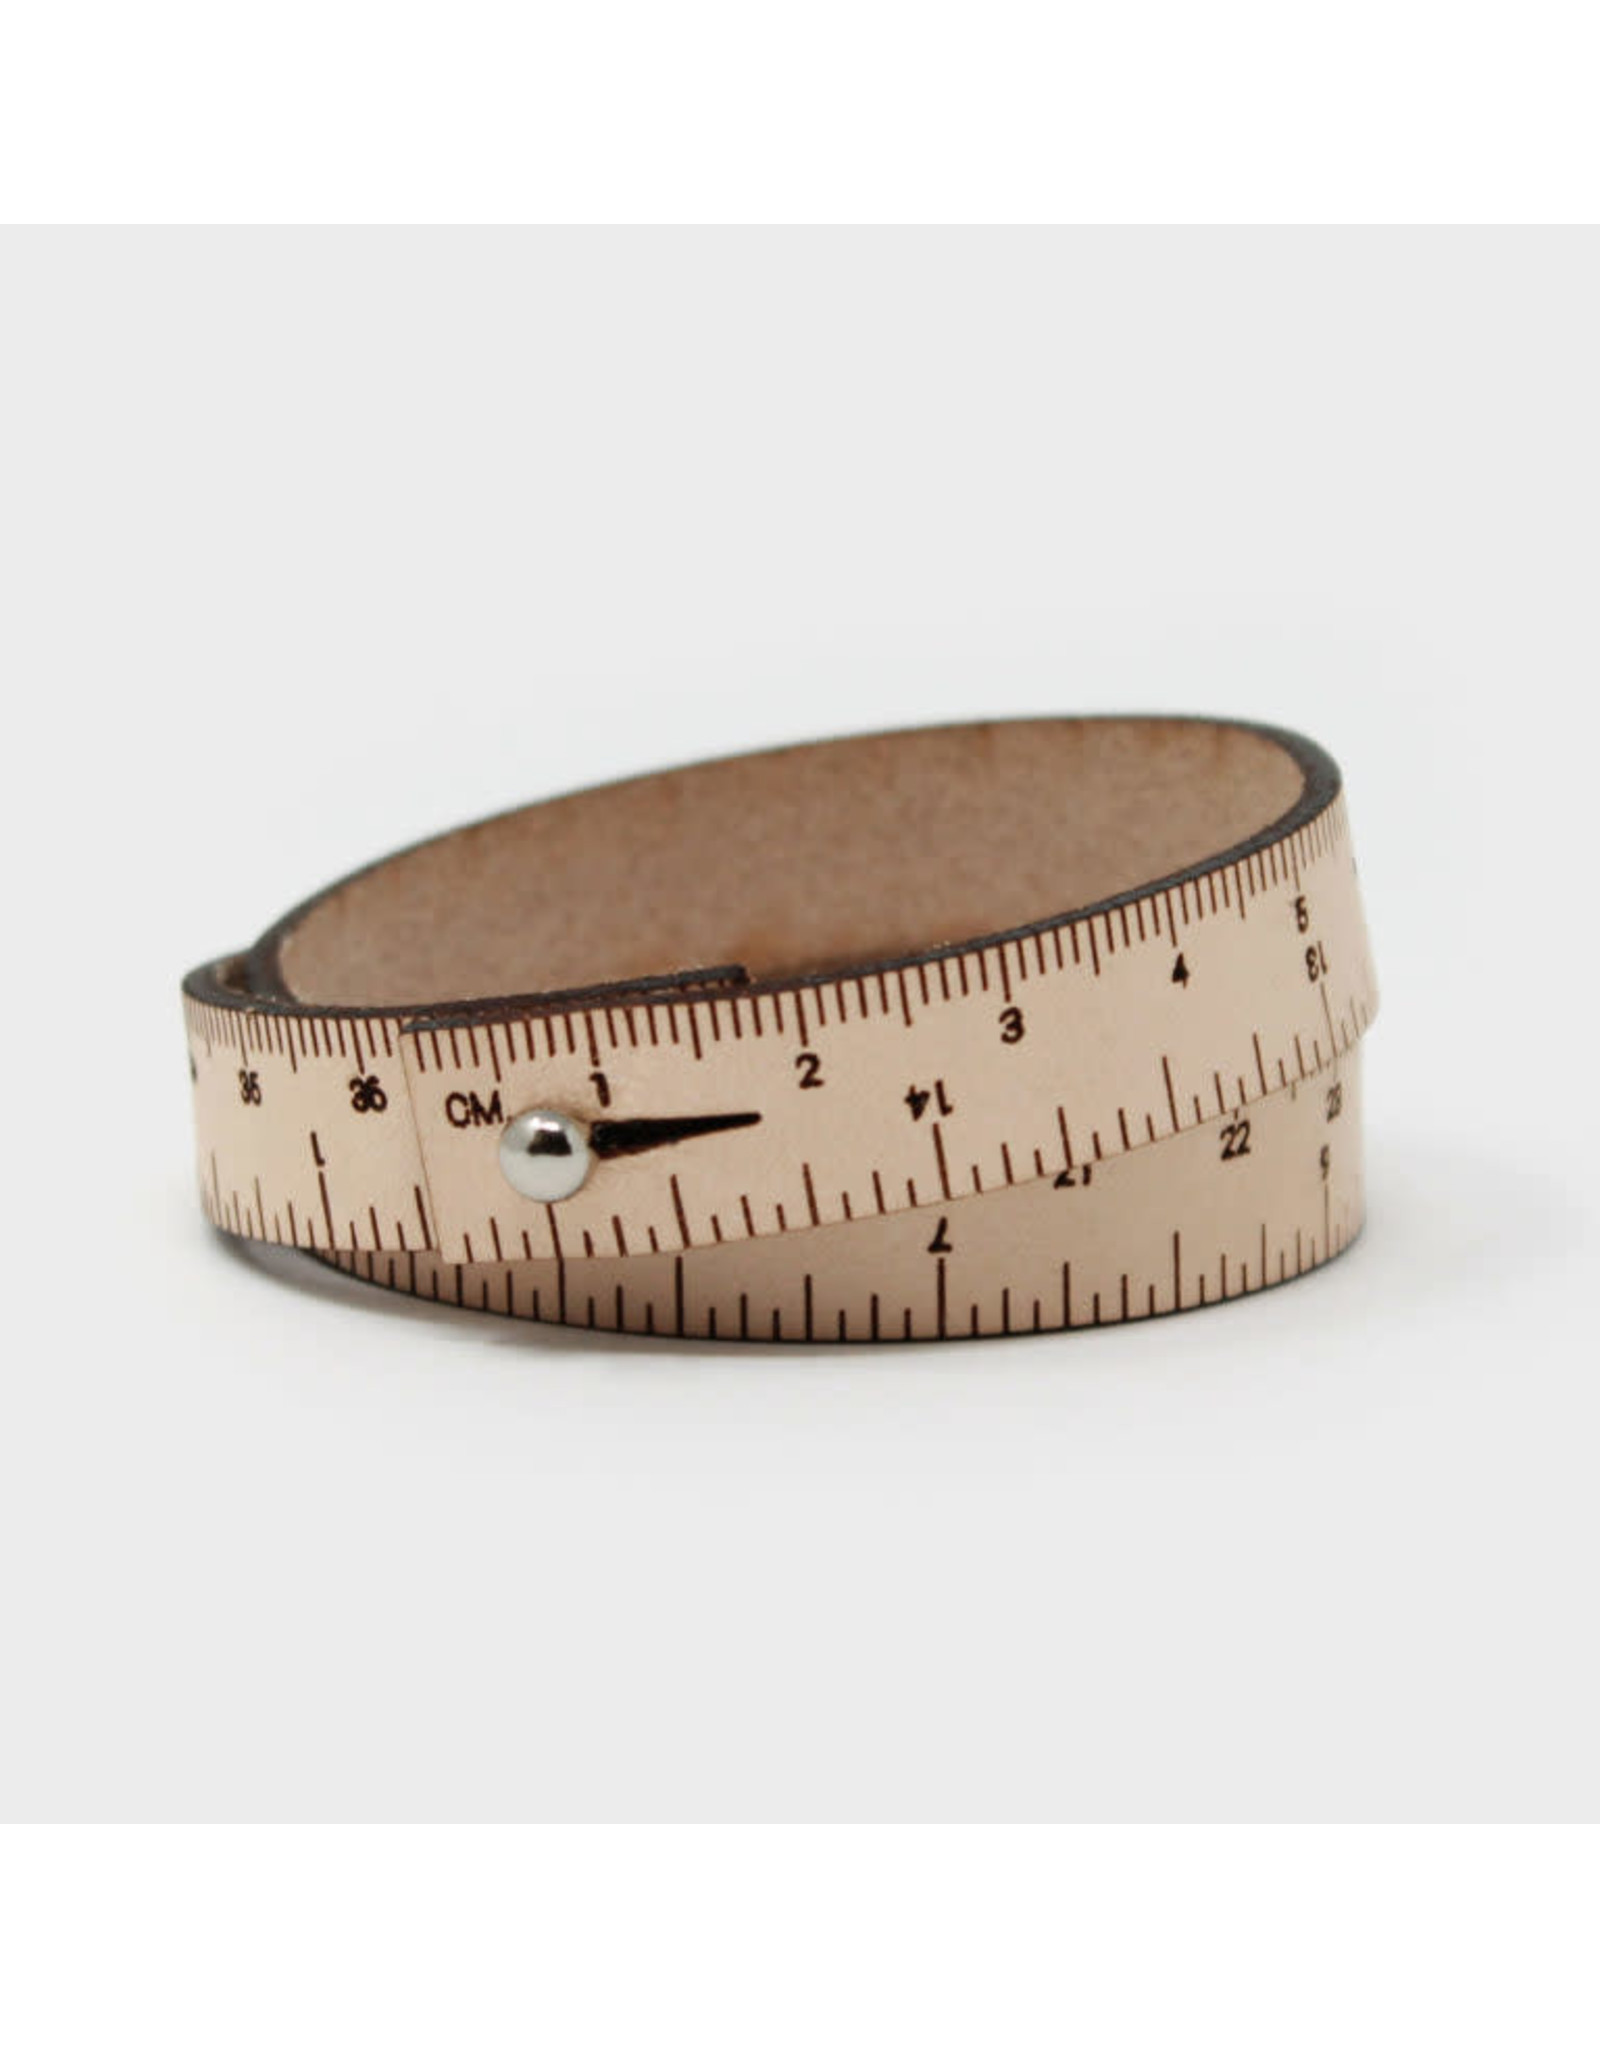 Wrist Ruler - NATURAL - 16 inches